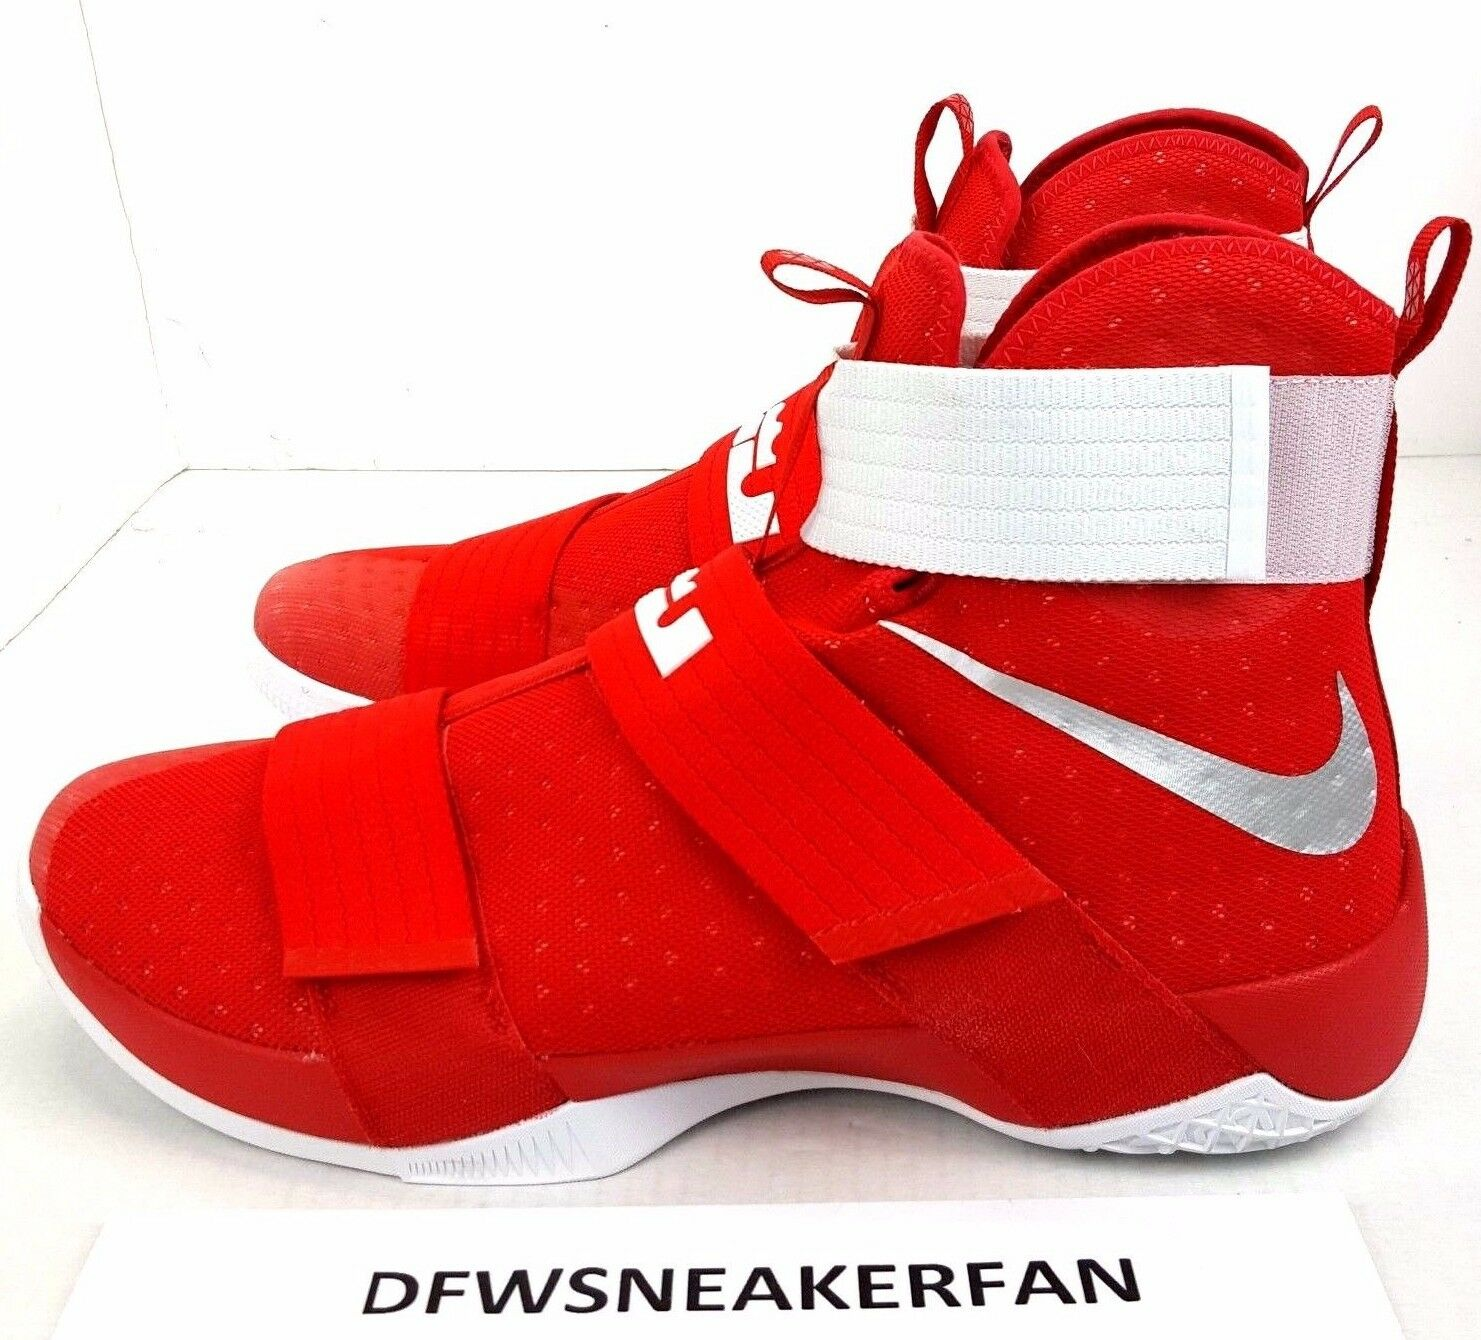 Wild casual shoes NIKE LEBRON SOLDIER 10 TB PROMO GYM RED WHITE SILVER 856489 663 SIZE 17 NN